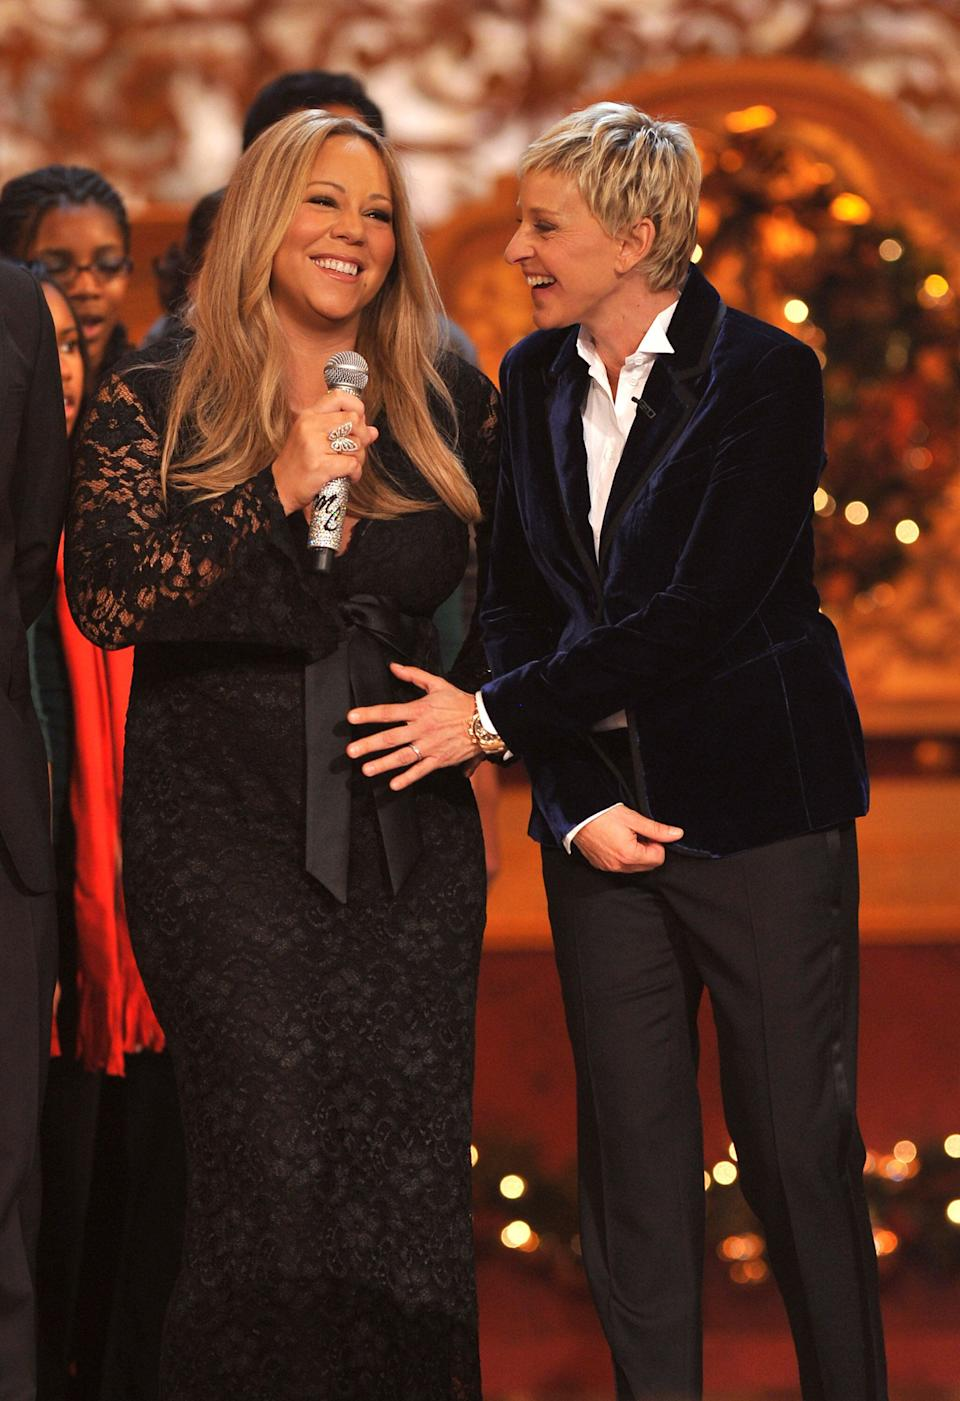 Carey, pregnant with twins at the time, and Ellen DeGeneres perform together during a Christmas event in 2010. (Photo: Theo Wargo via Getty Images)